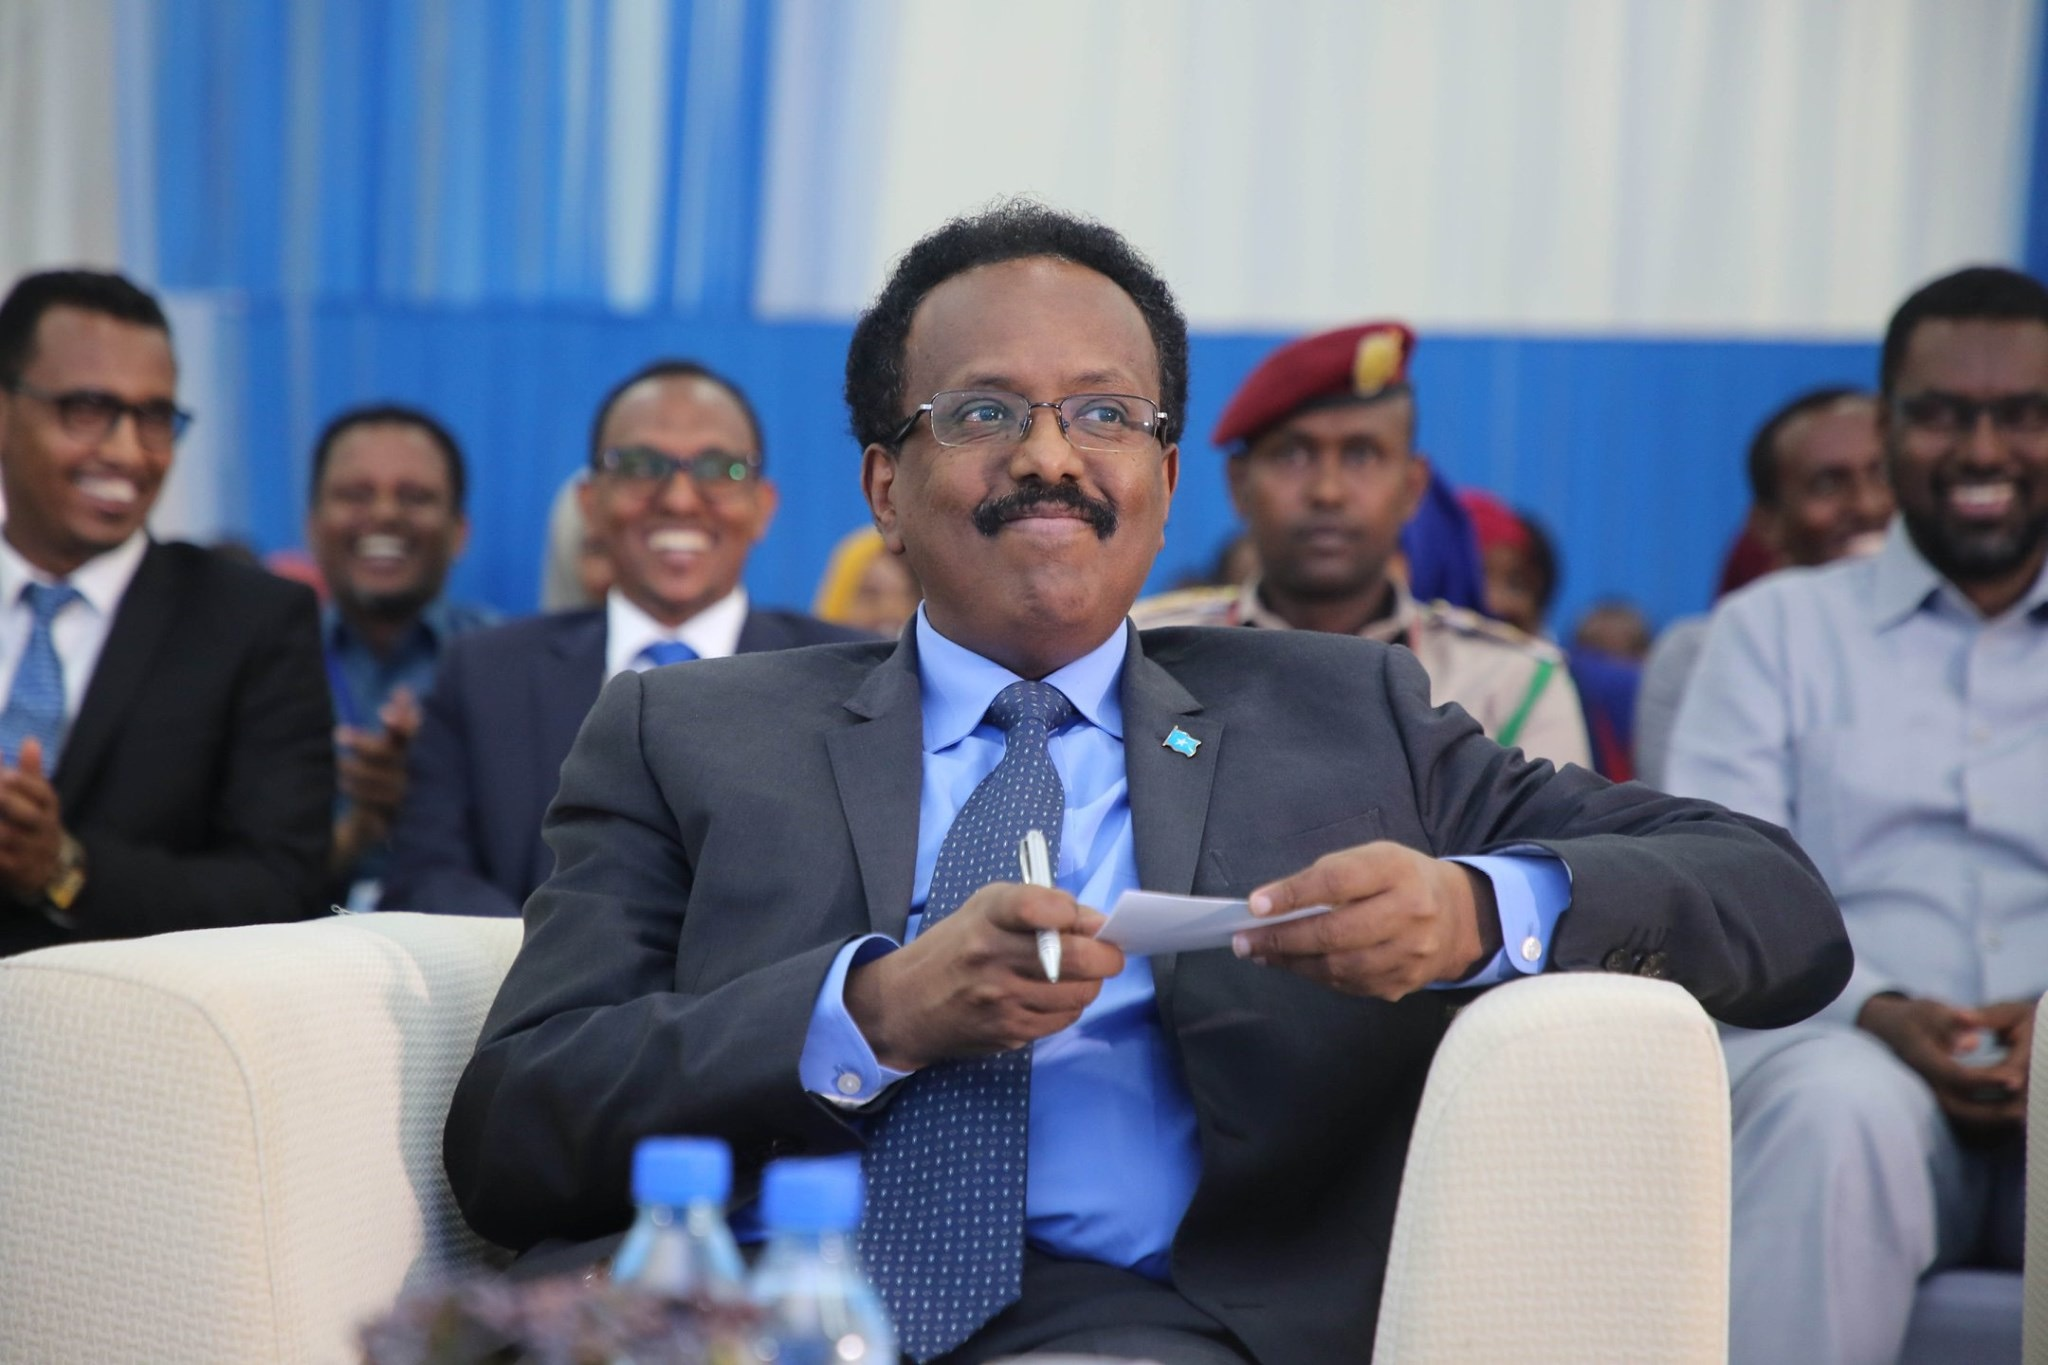 Future of Somalia's Ruling System in Light of Upcoming Presidential Elections